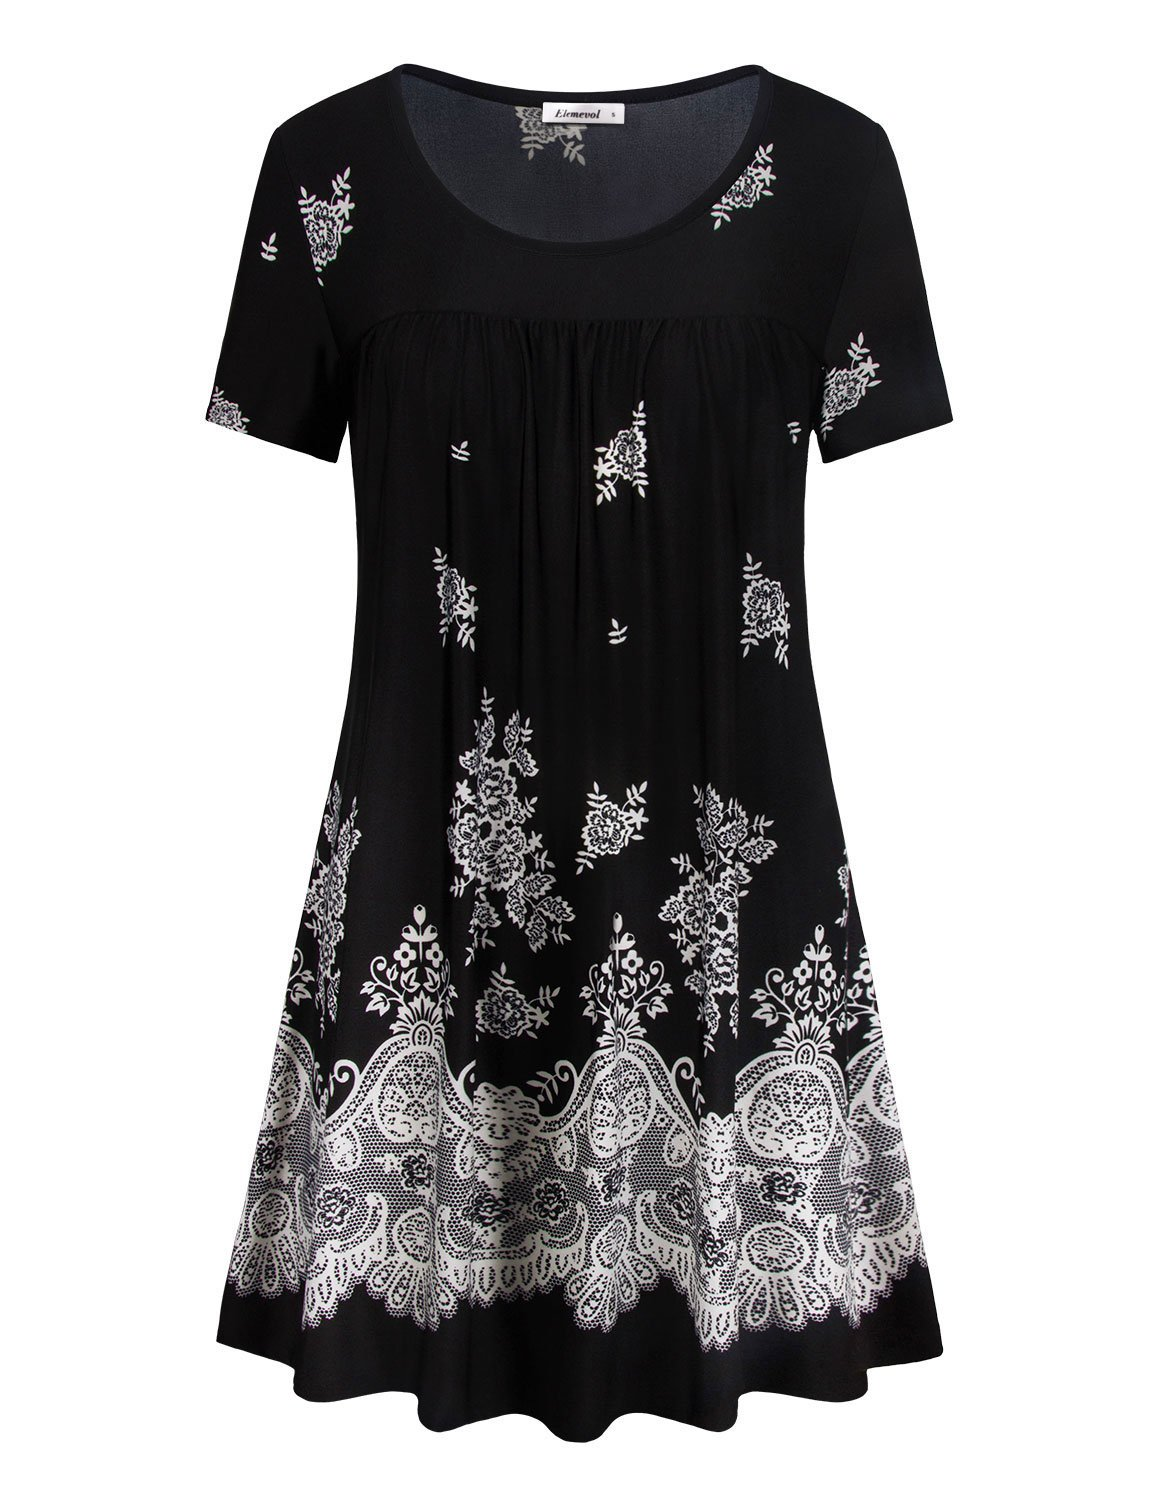 Short Sleeve Tunic,Flared A Line Stylish Floral Printed Scoop Neck Vintage Paisley Style Womens Work Blouse Dressy Shirts Black XXL